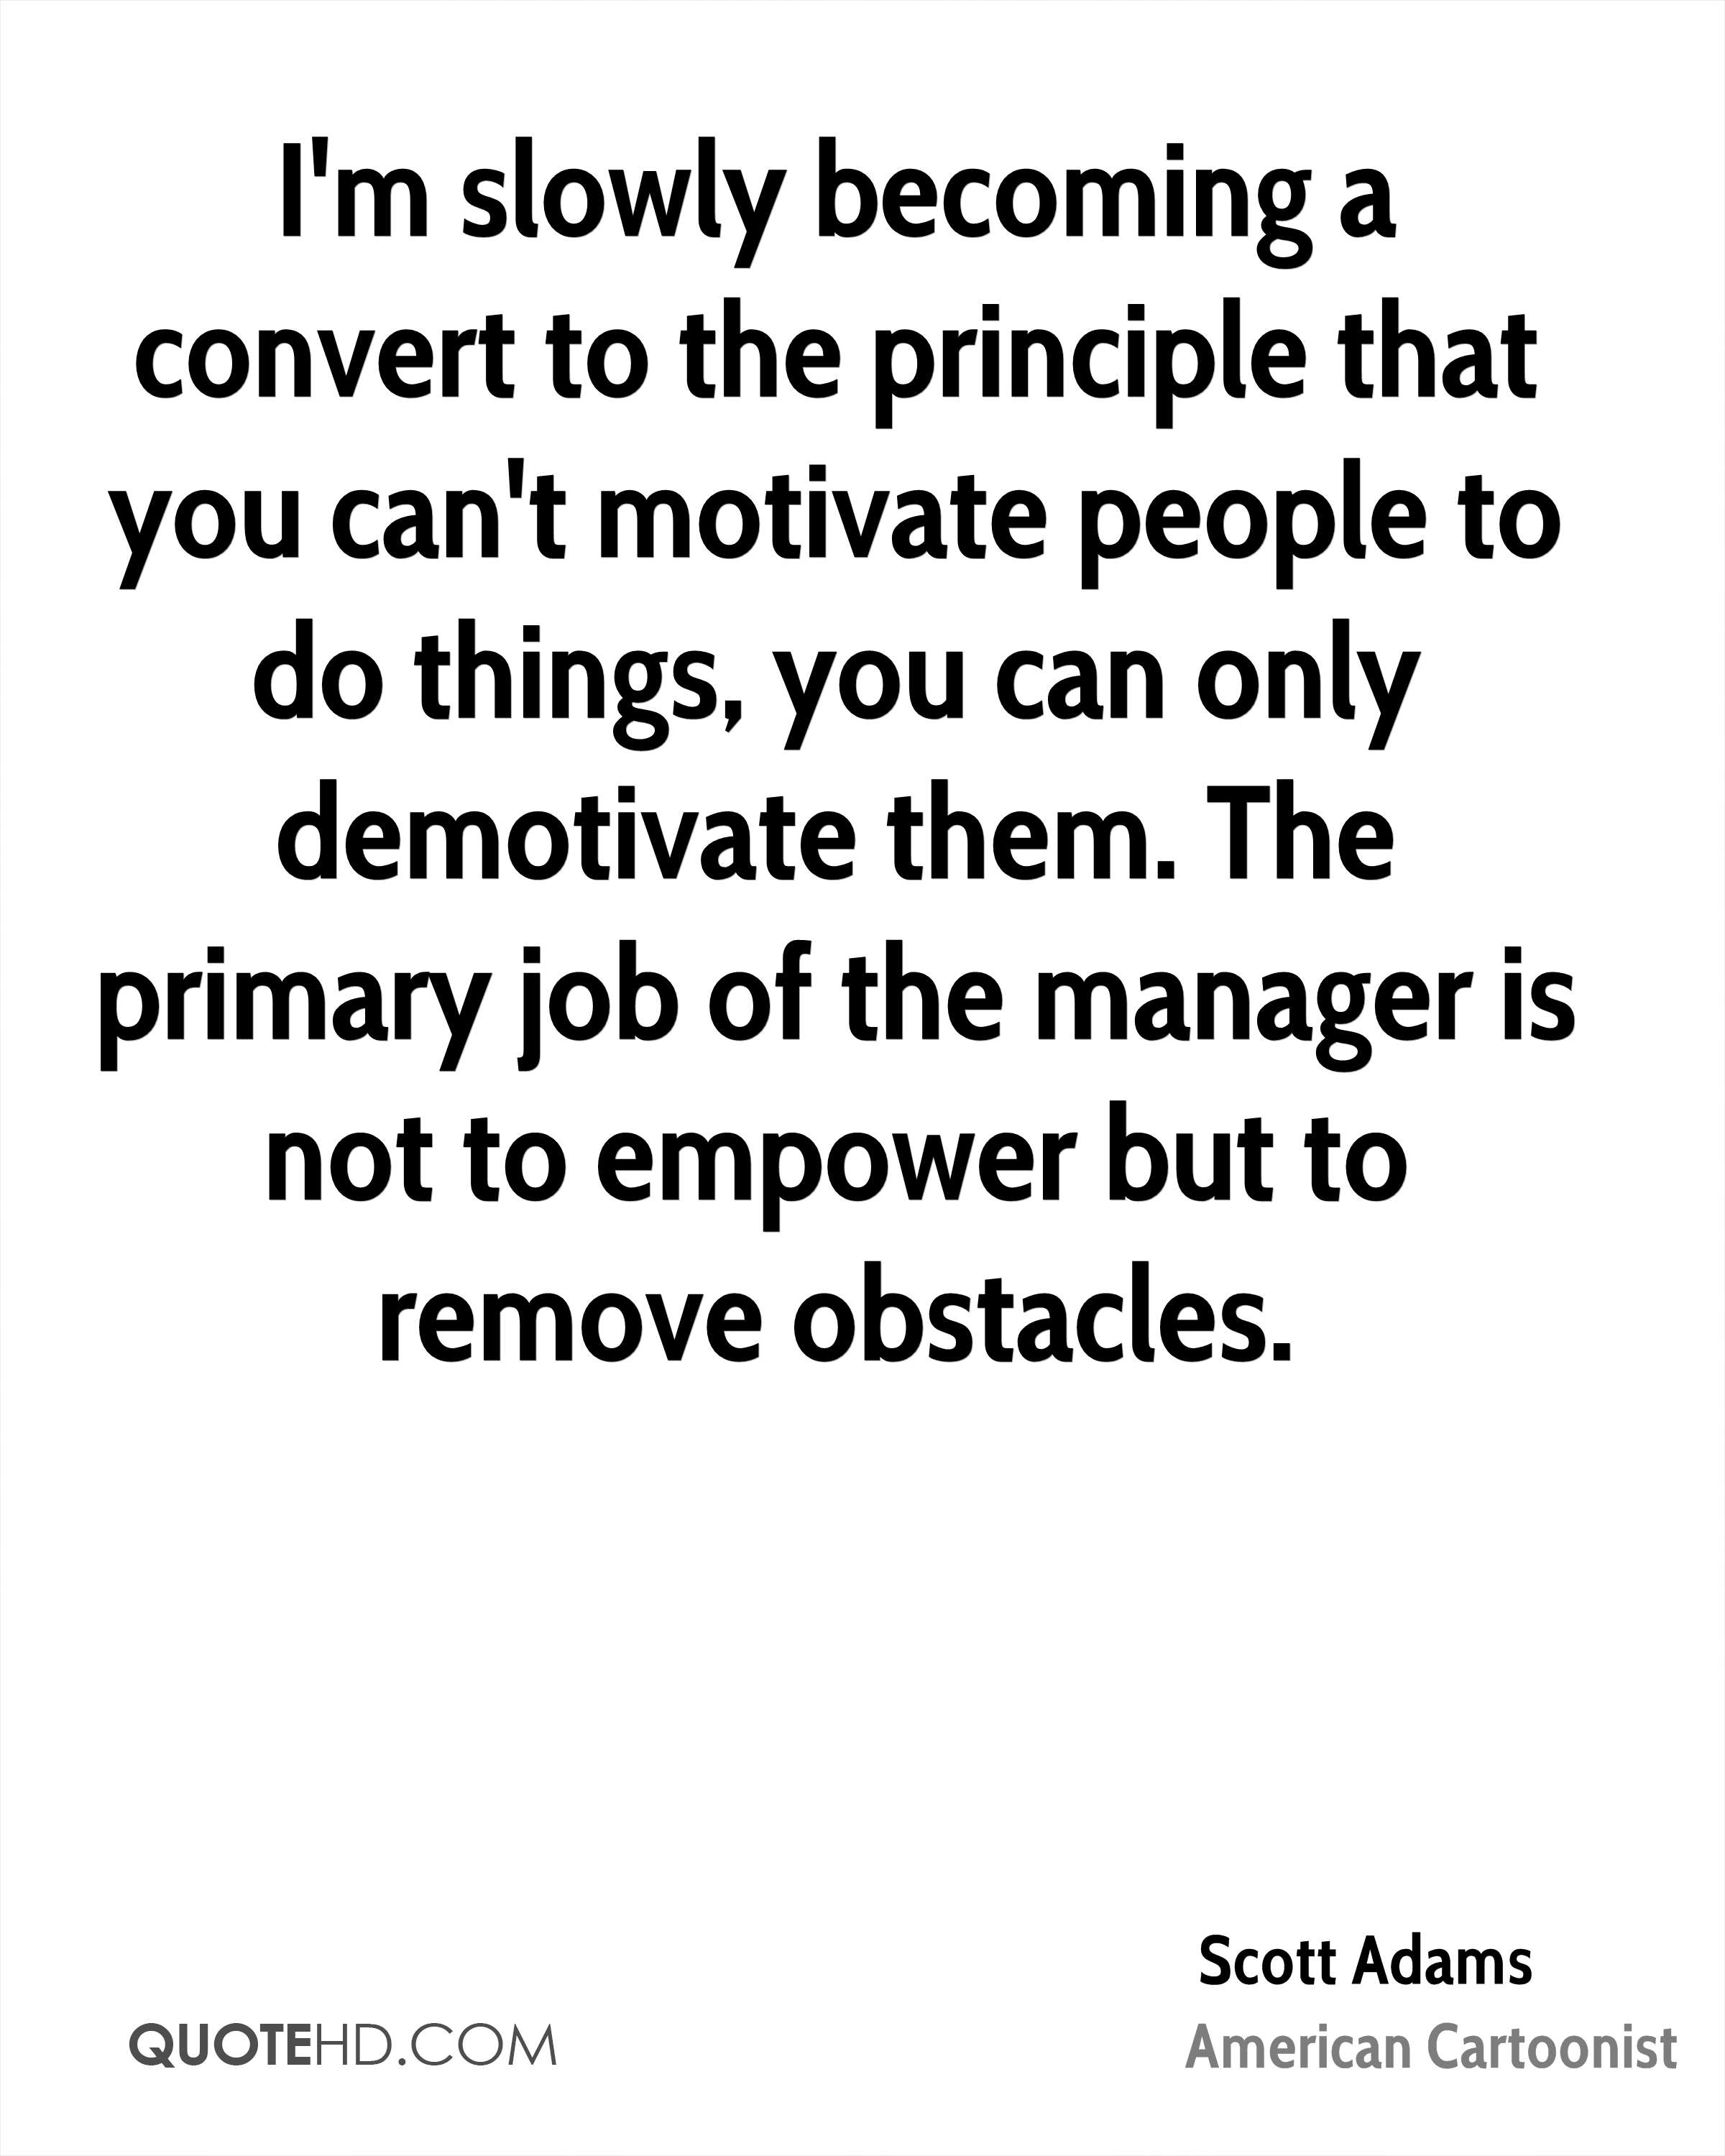 I'm slowly becoming a convert to the principle that you can't motivate people to do things, you can only demotivate them. The primary job of the manager is not to empower but to remove obstacles.